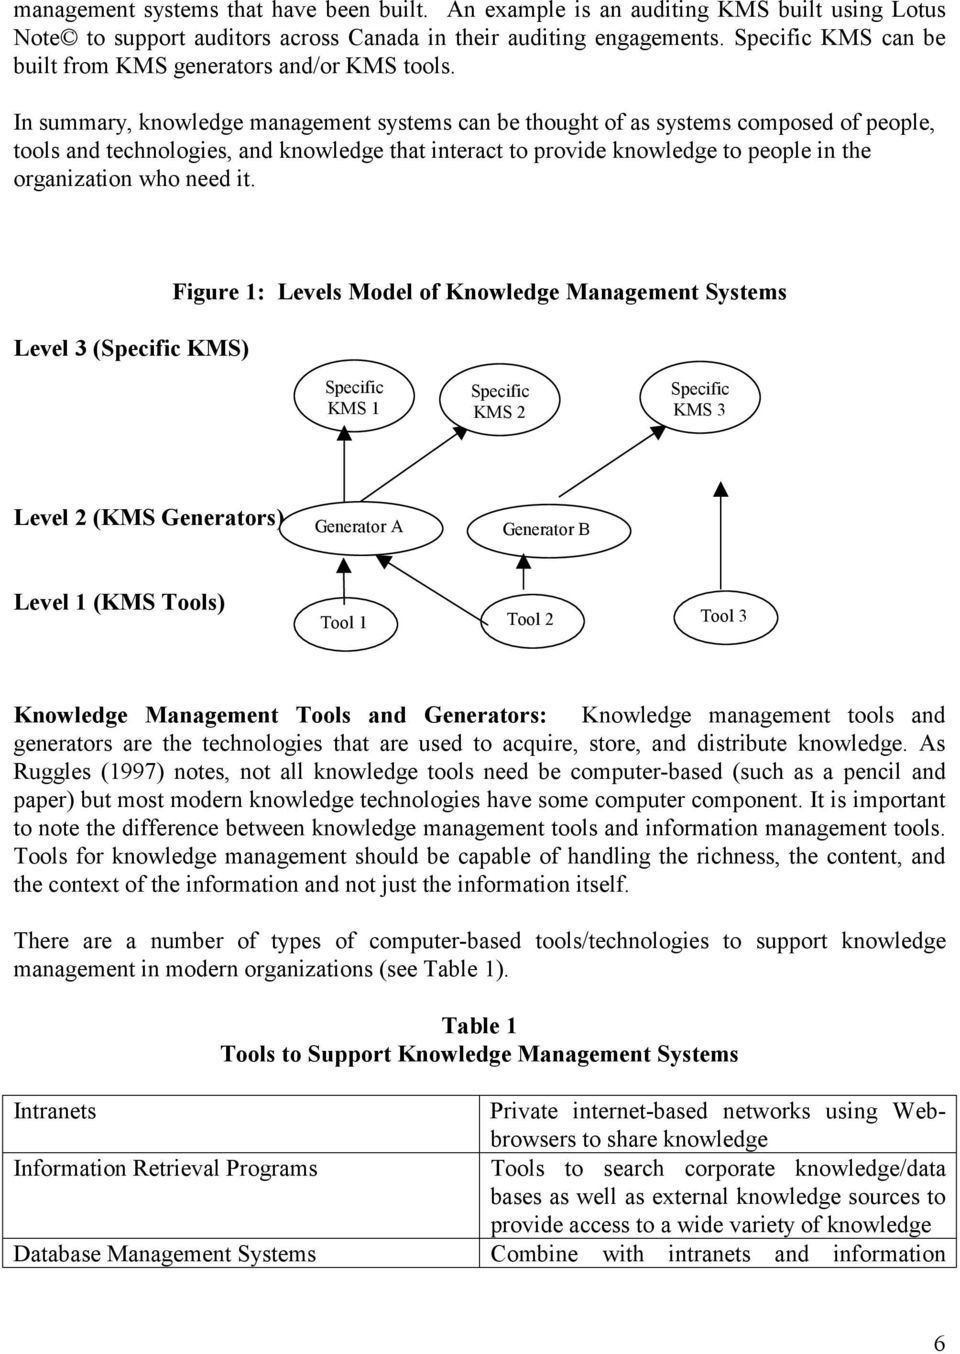 In summary, knowledge management systems can be thought of as systems composed of people, tools and technologies, and knowledge that interact to provide knowledge to people in the organization who